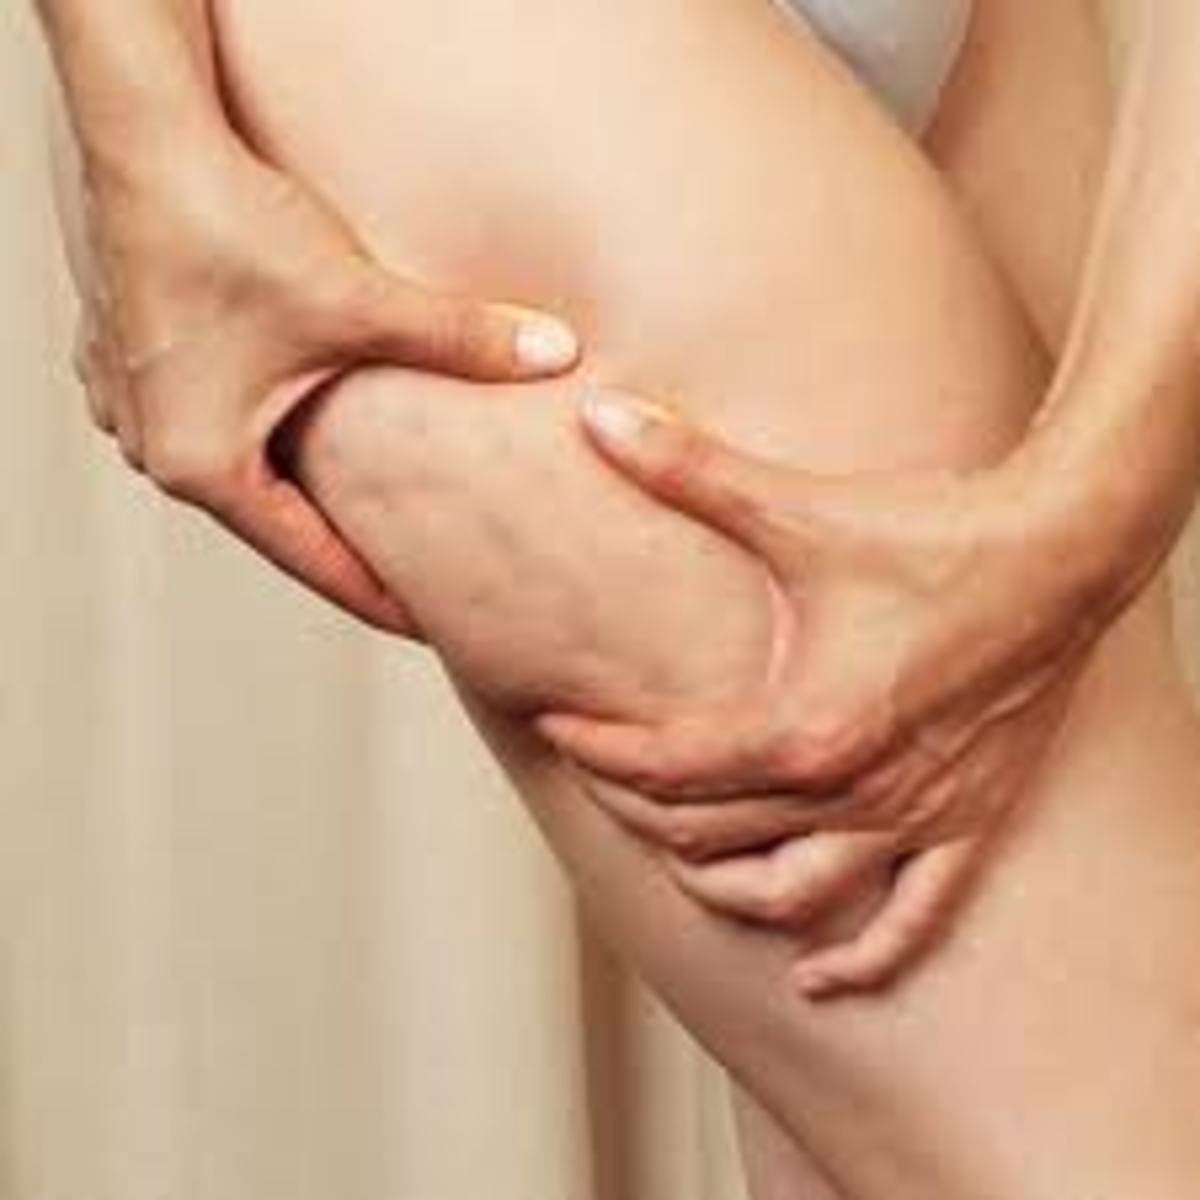 Example of cellulite on thighs